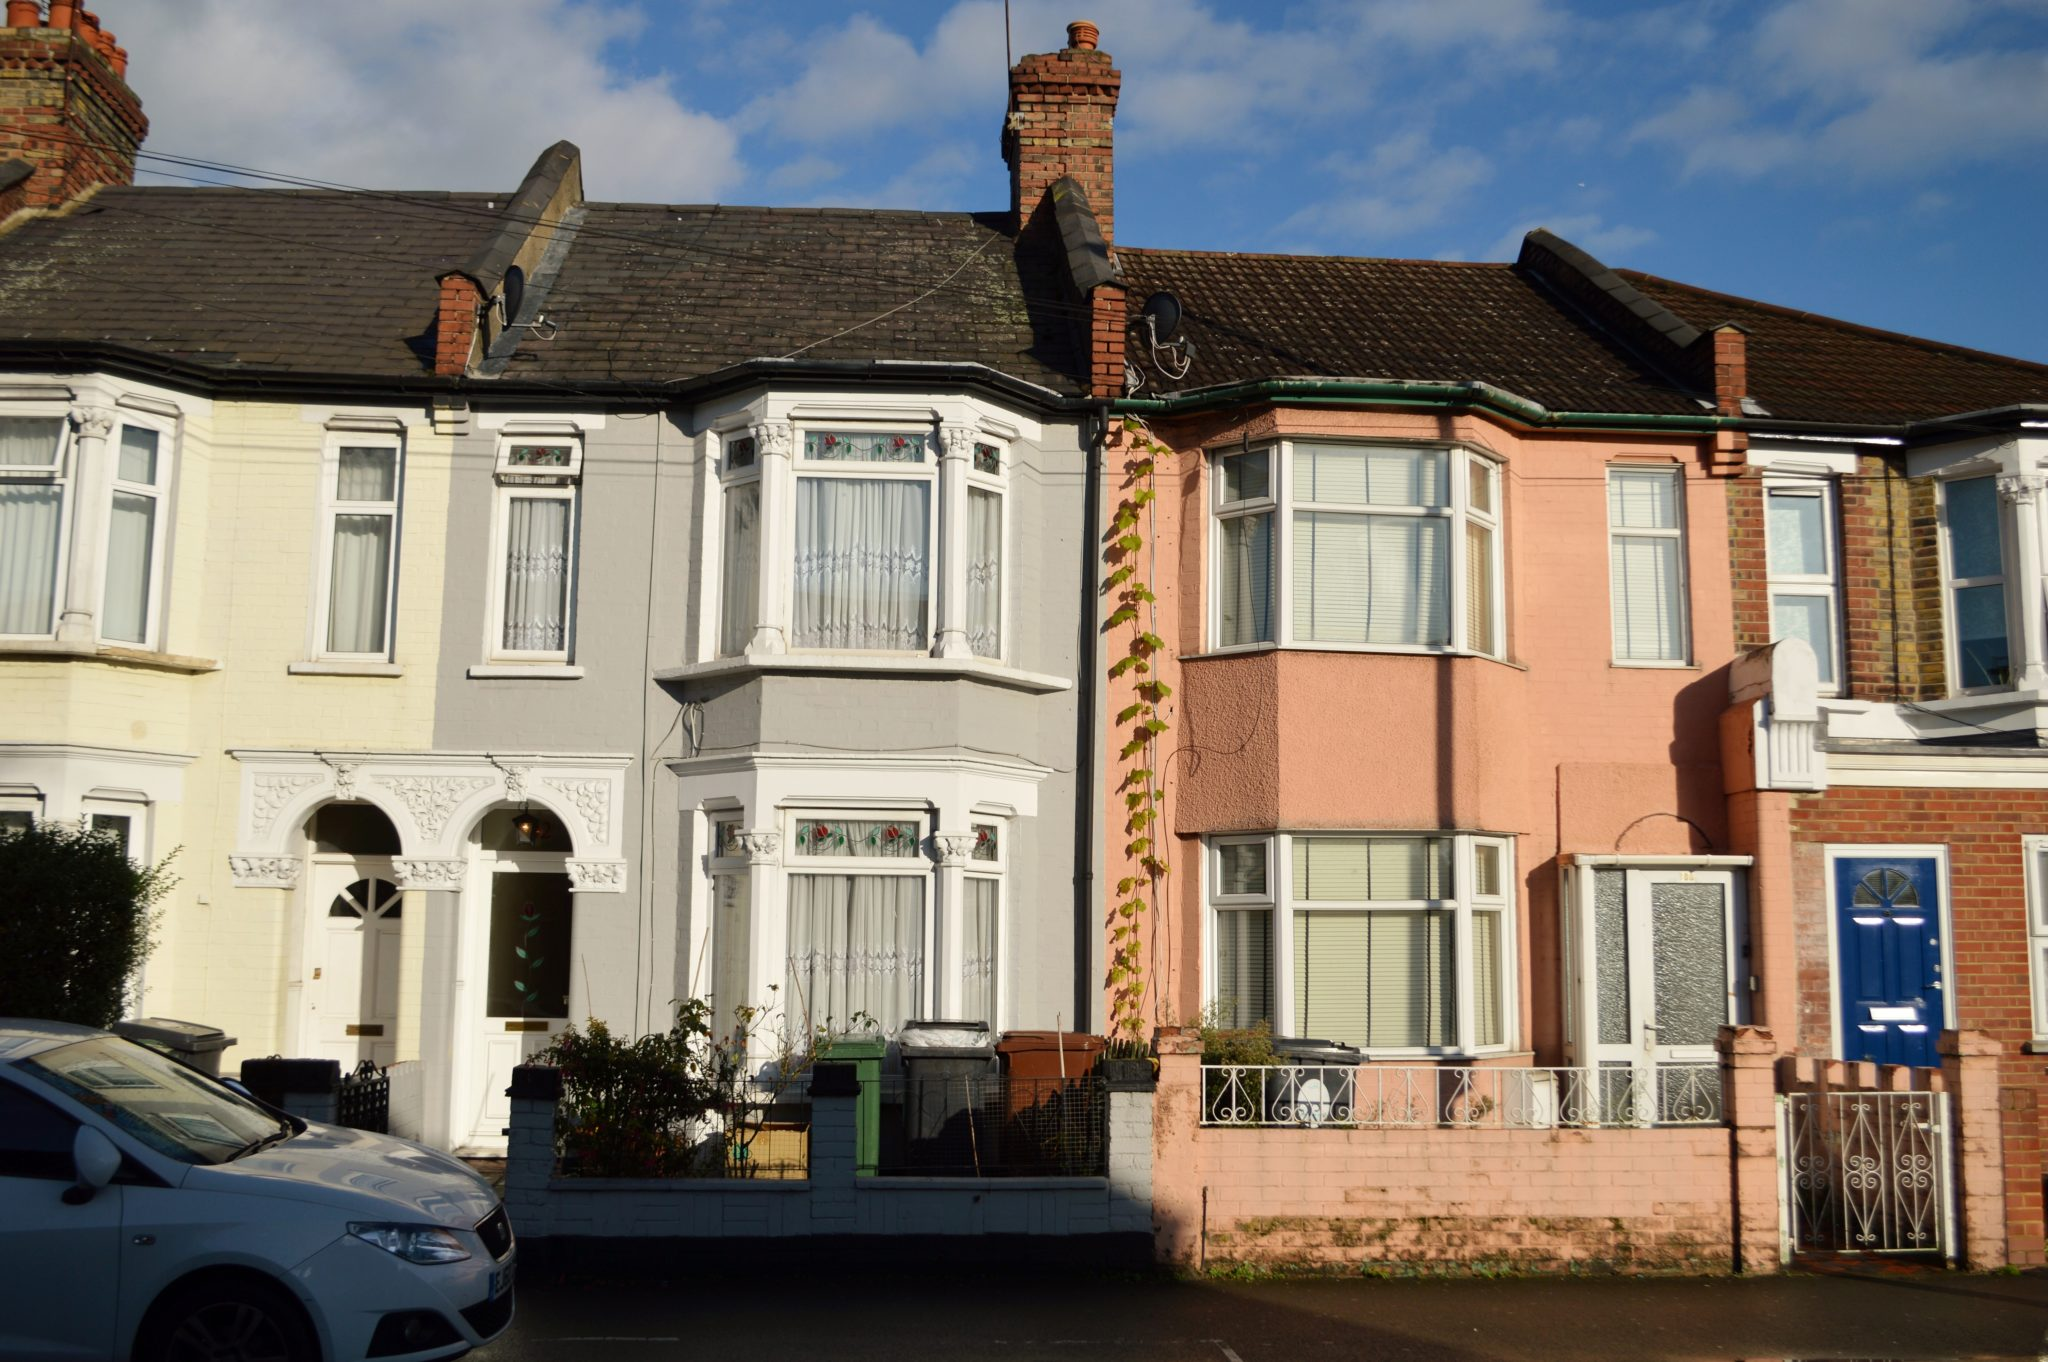 3 Bedroom House, Fulbourne Road, Walthamstow, E17 4ET